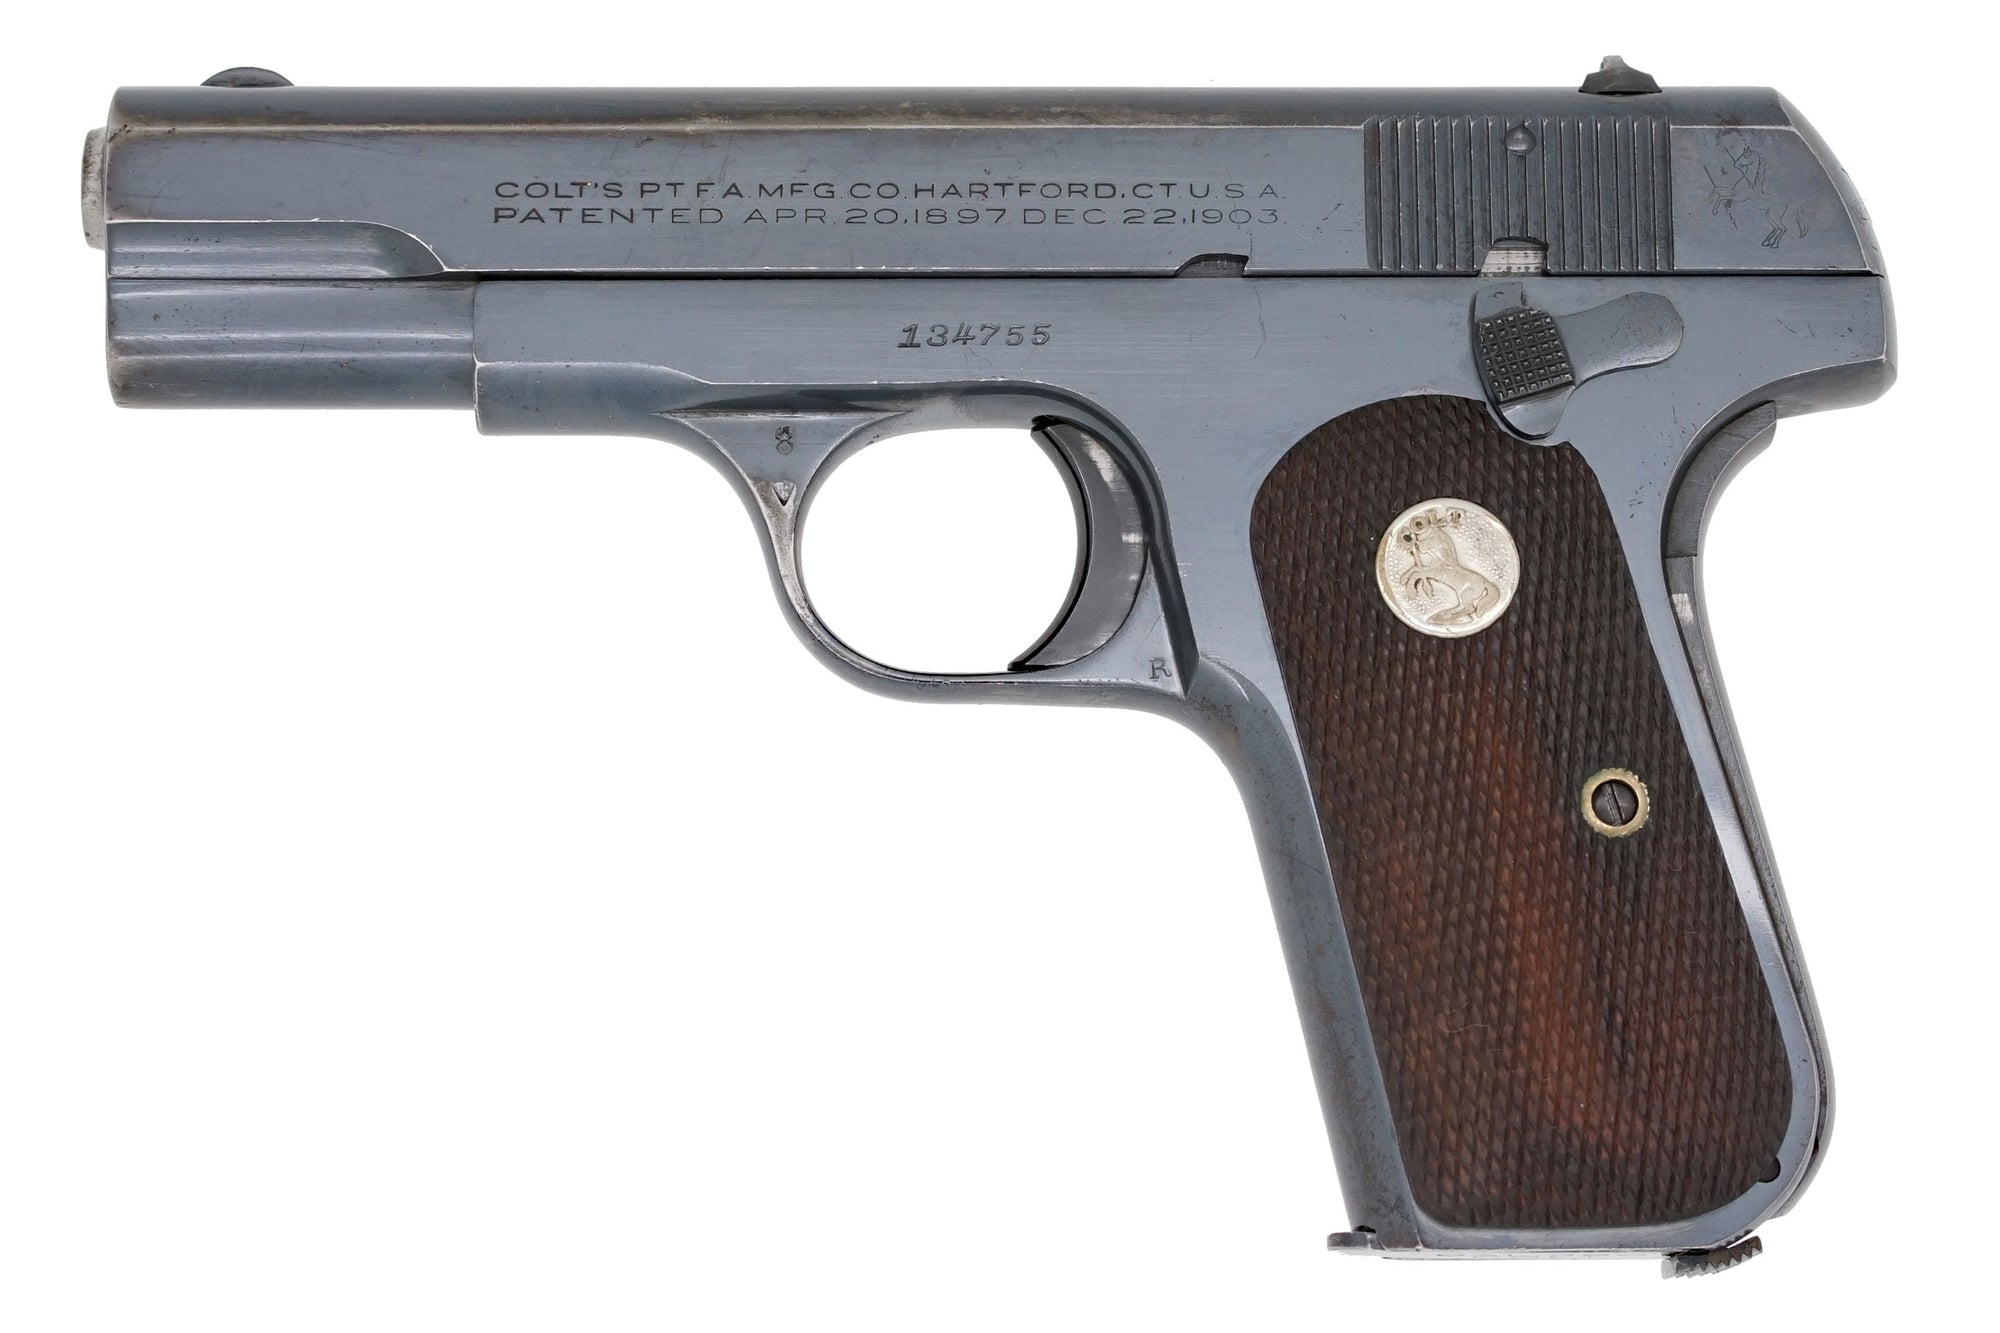 Colt 1908 Pocket Hammerless 380ACP SN:134755 MFG:1943 Navy